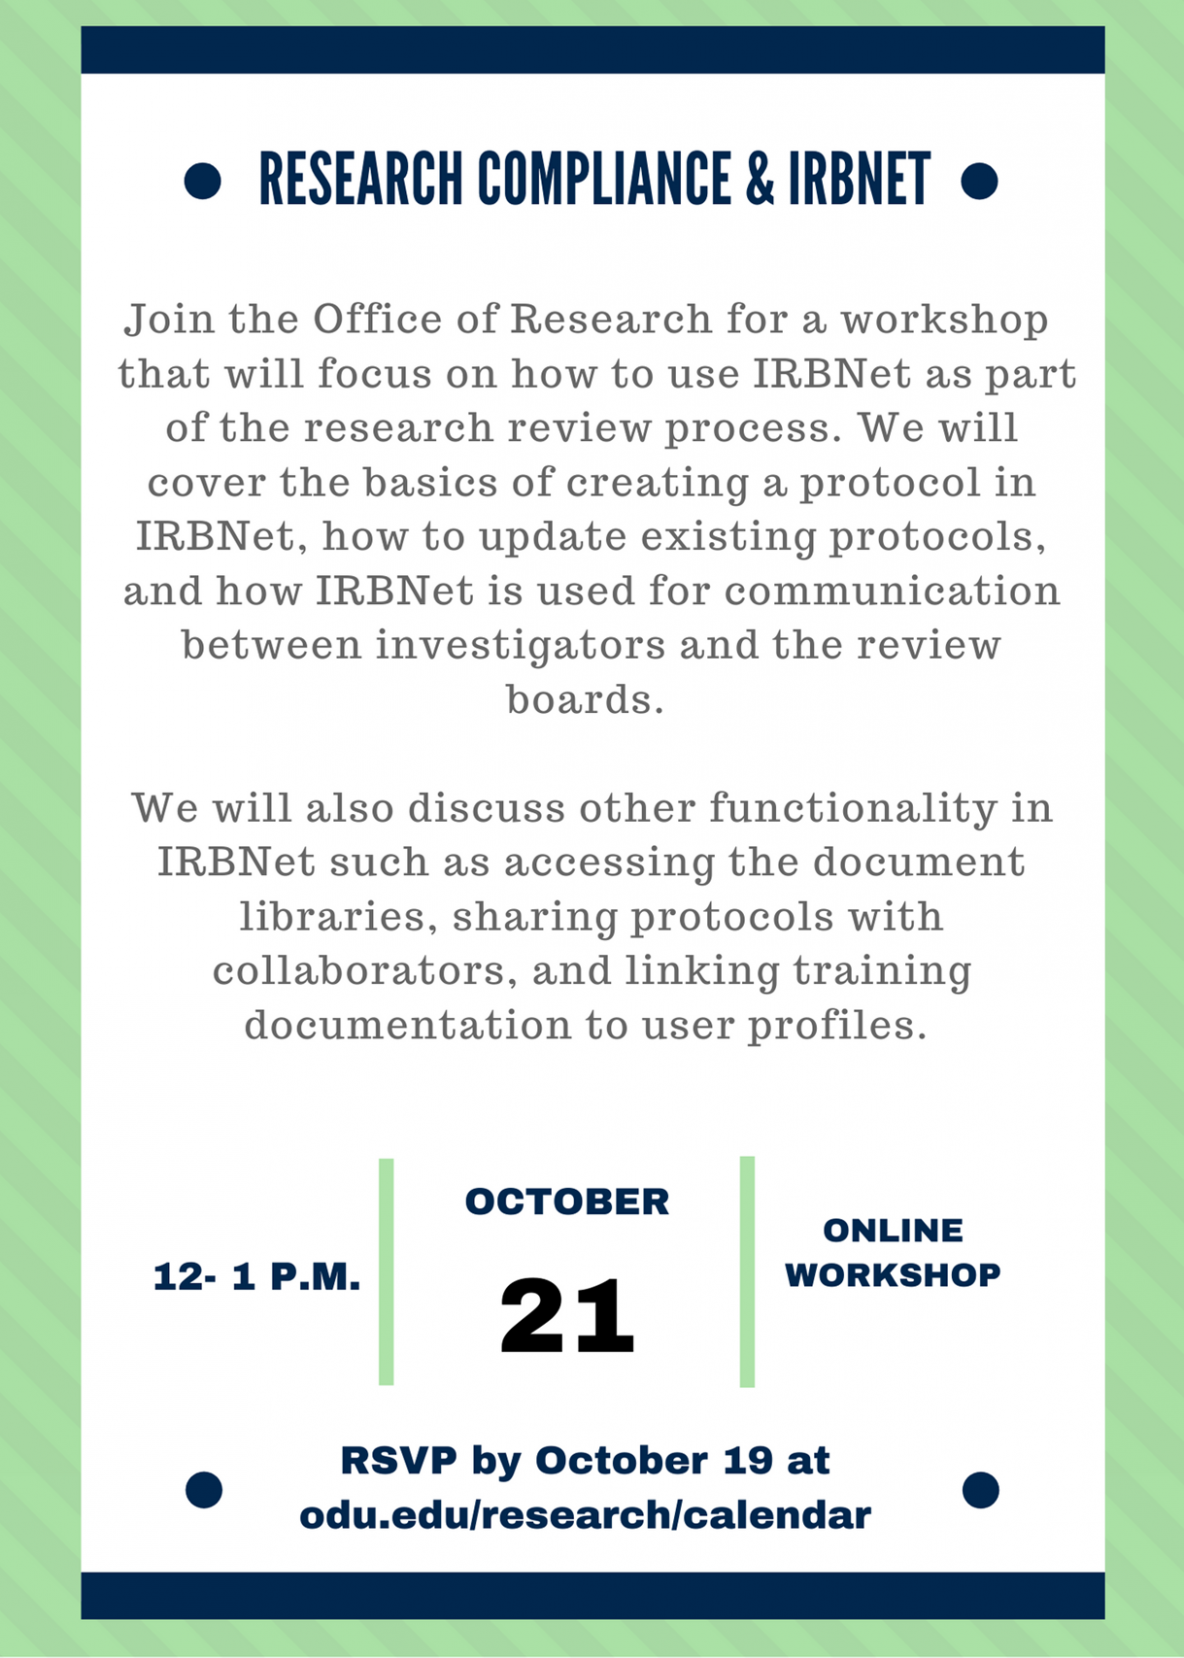 Office of Research IRBNet event 10/2020